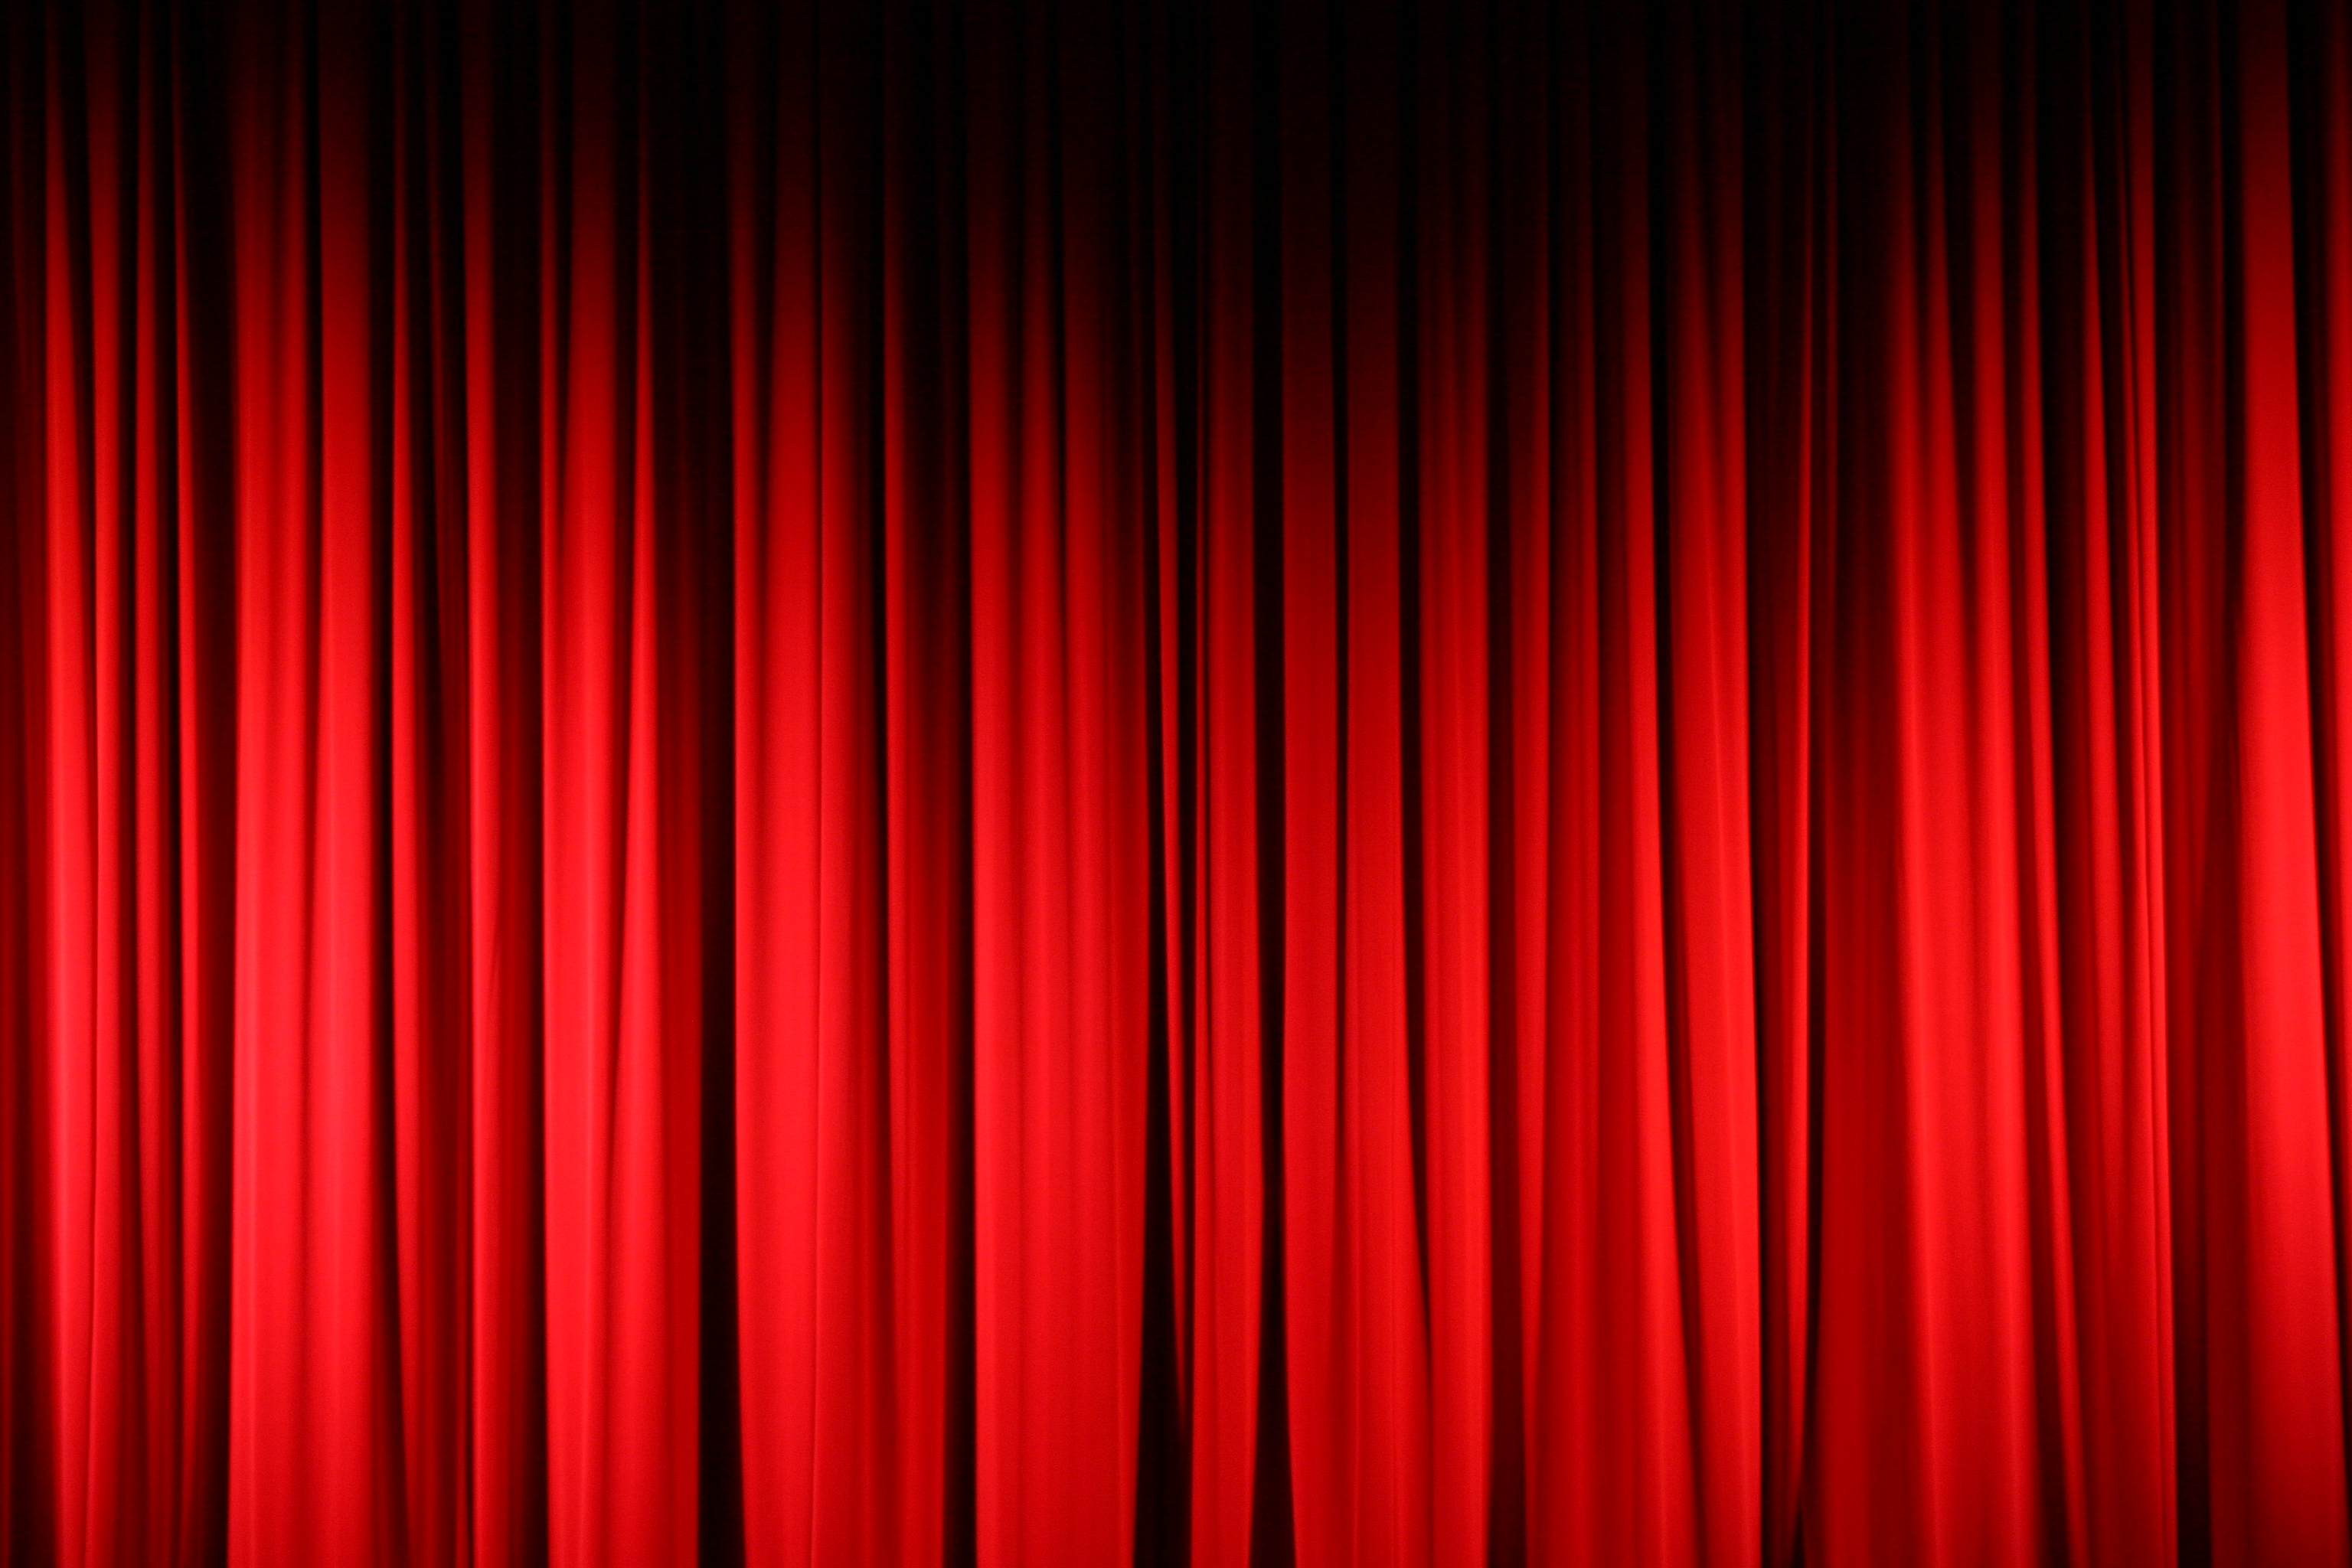 Curtain clipart curtain raiser And Art Others Red Inspiration